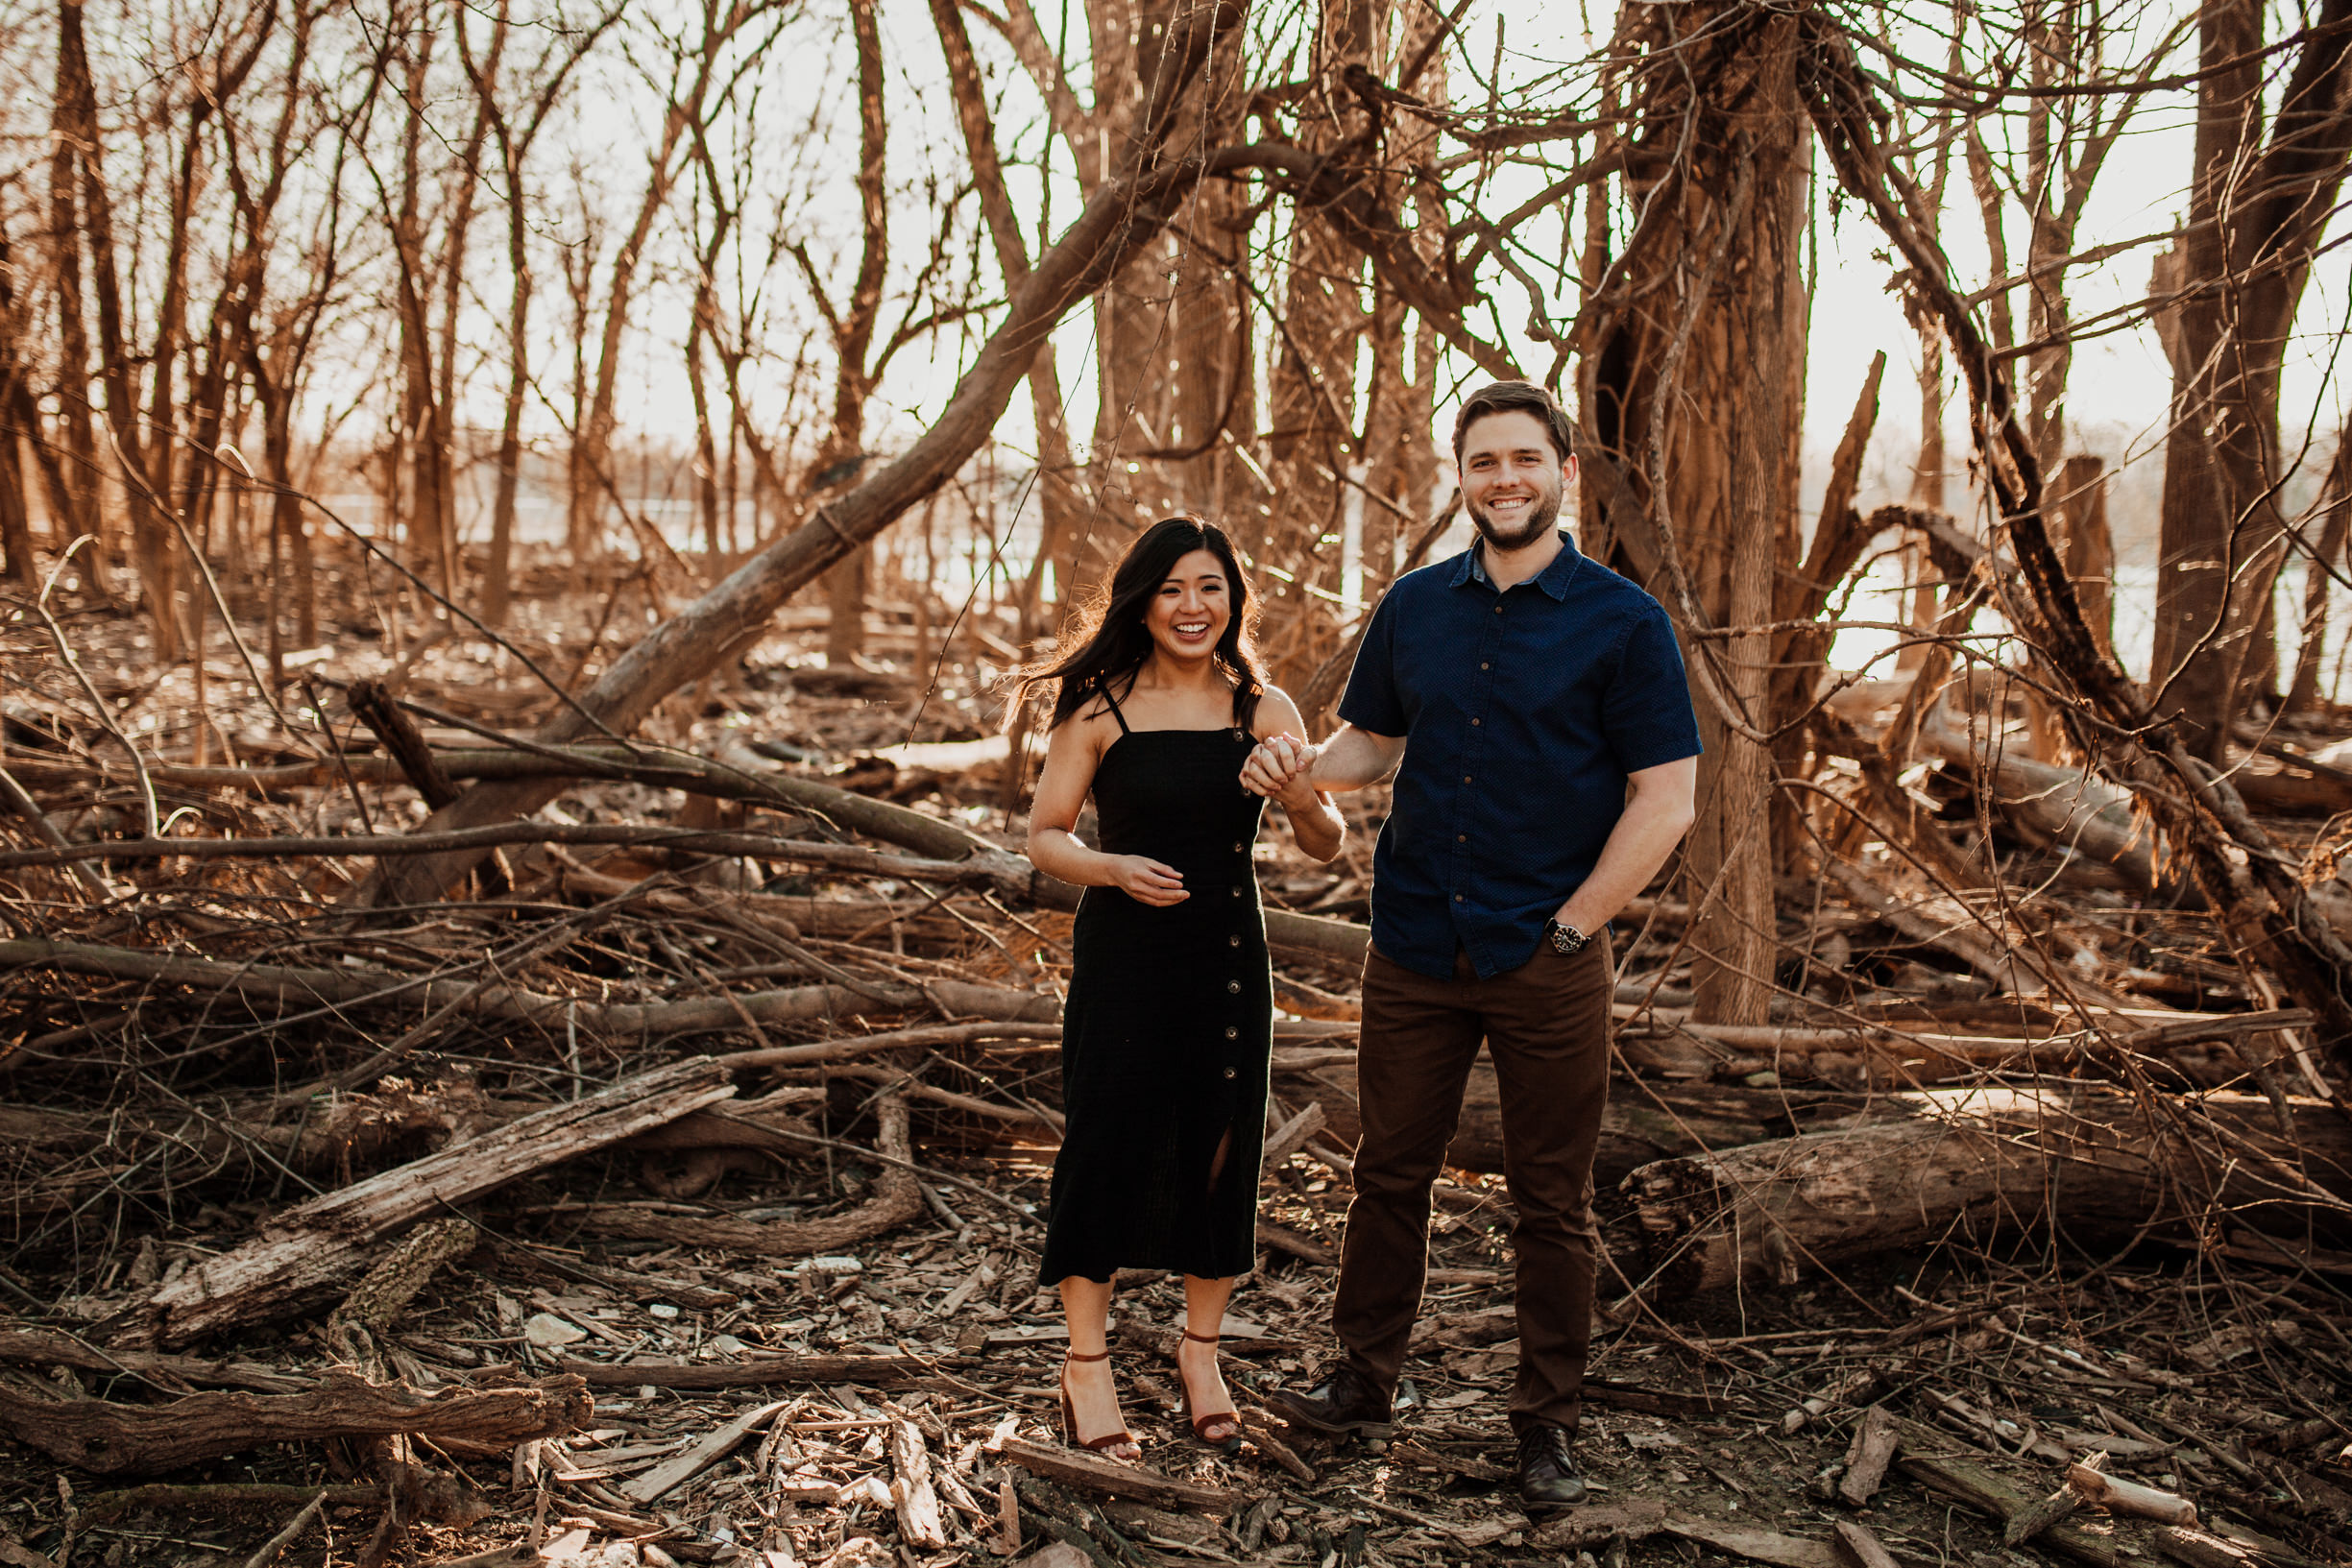 louisville-engagement-photographer-crystal-ludwick-photo-tammy-and-caleb-engagement-photography (15 of 32).jpg